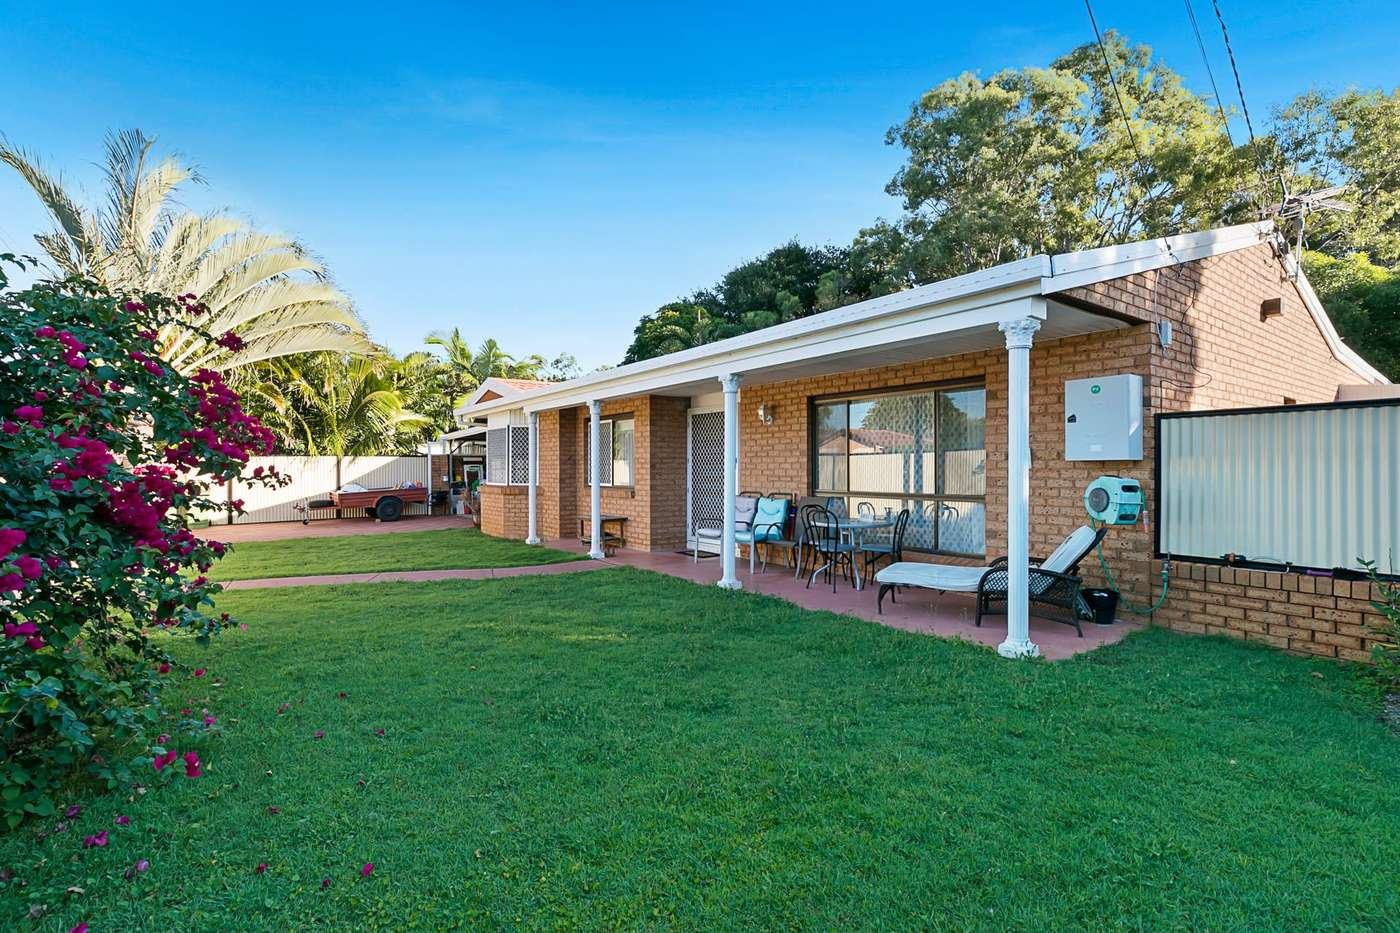 Main view of Homely house listing, 4 Cooinda Street, Wellington Point, QLD 4160